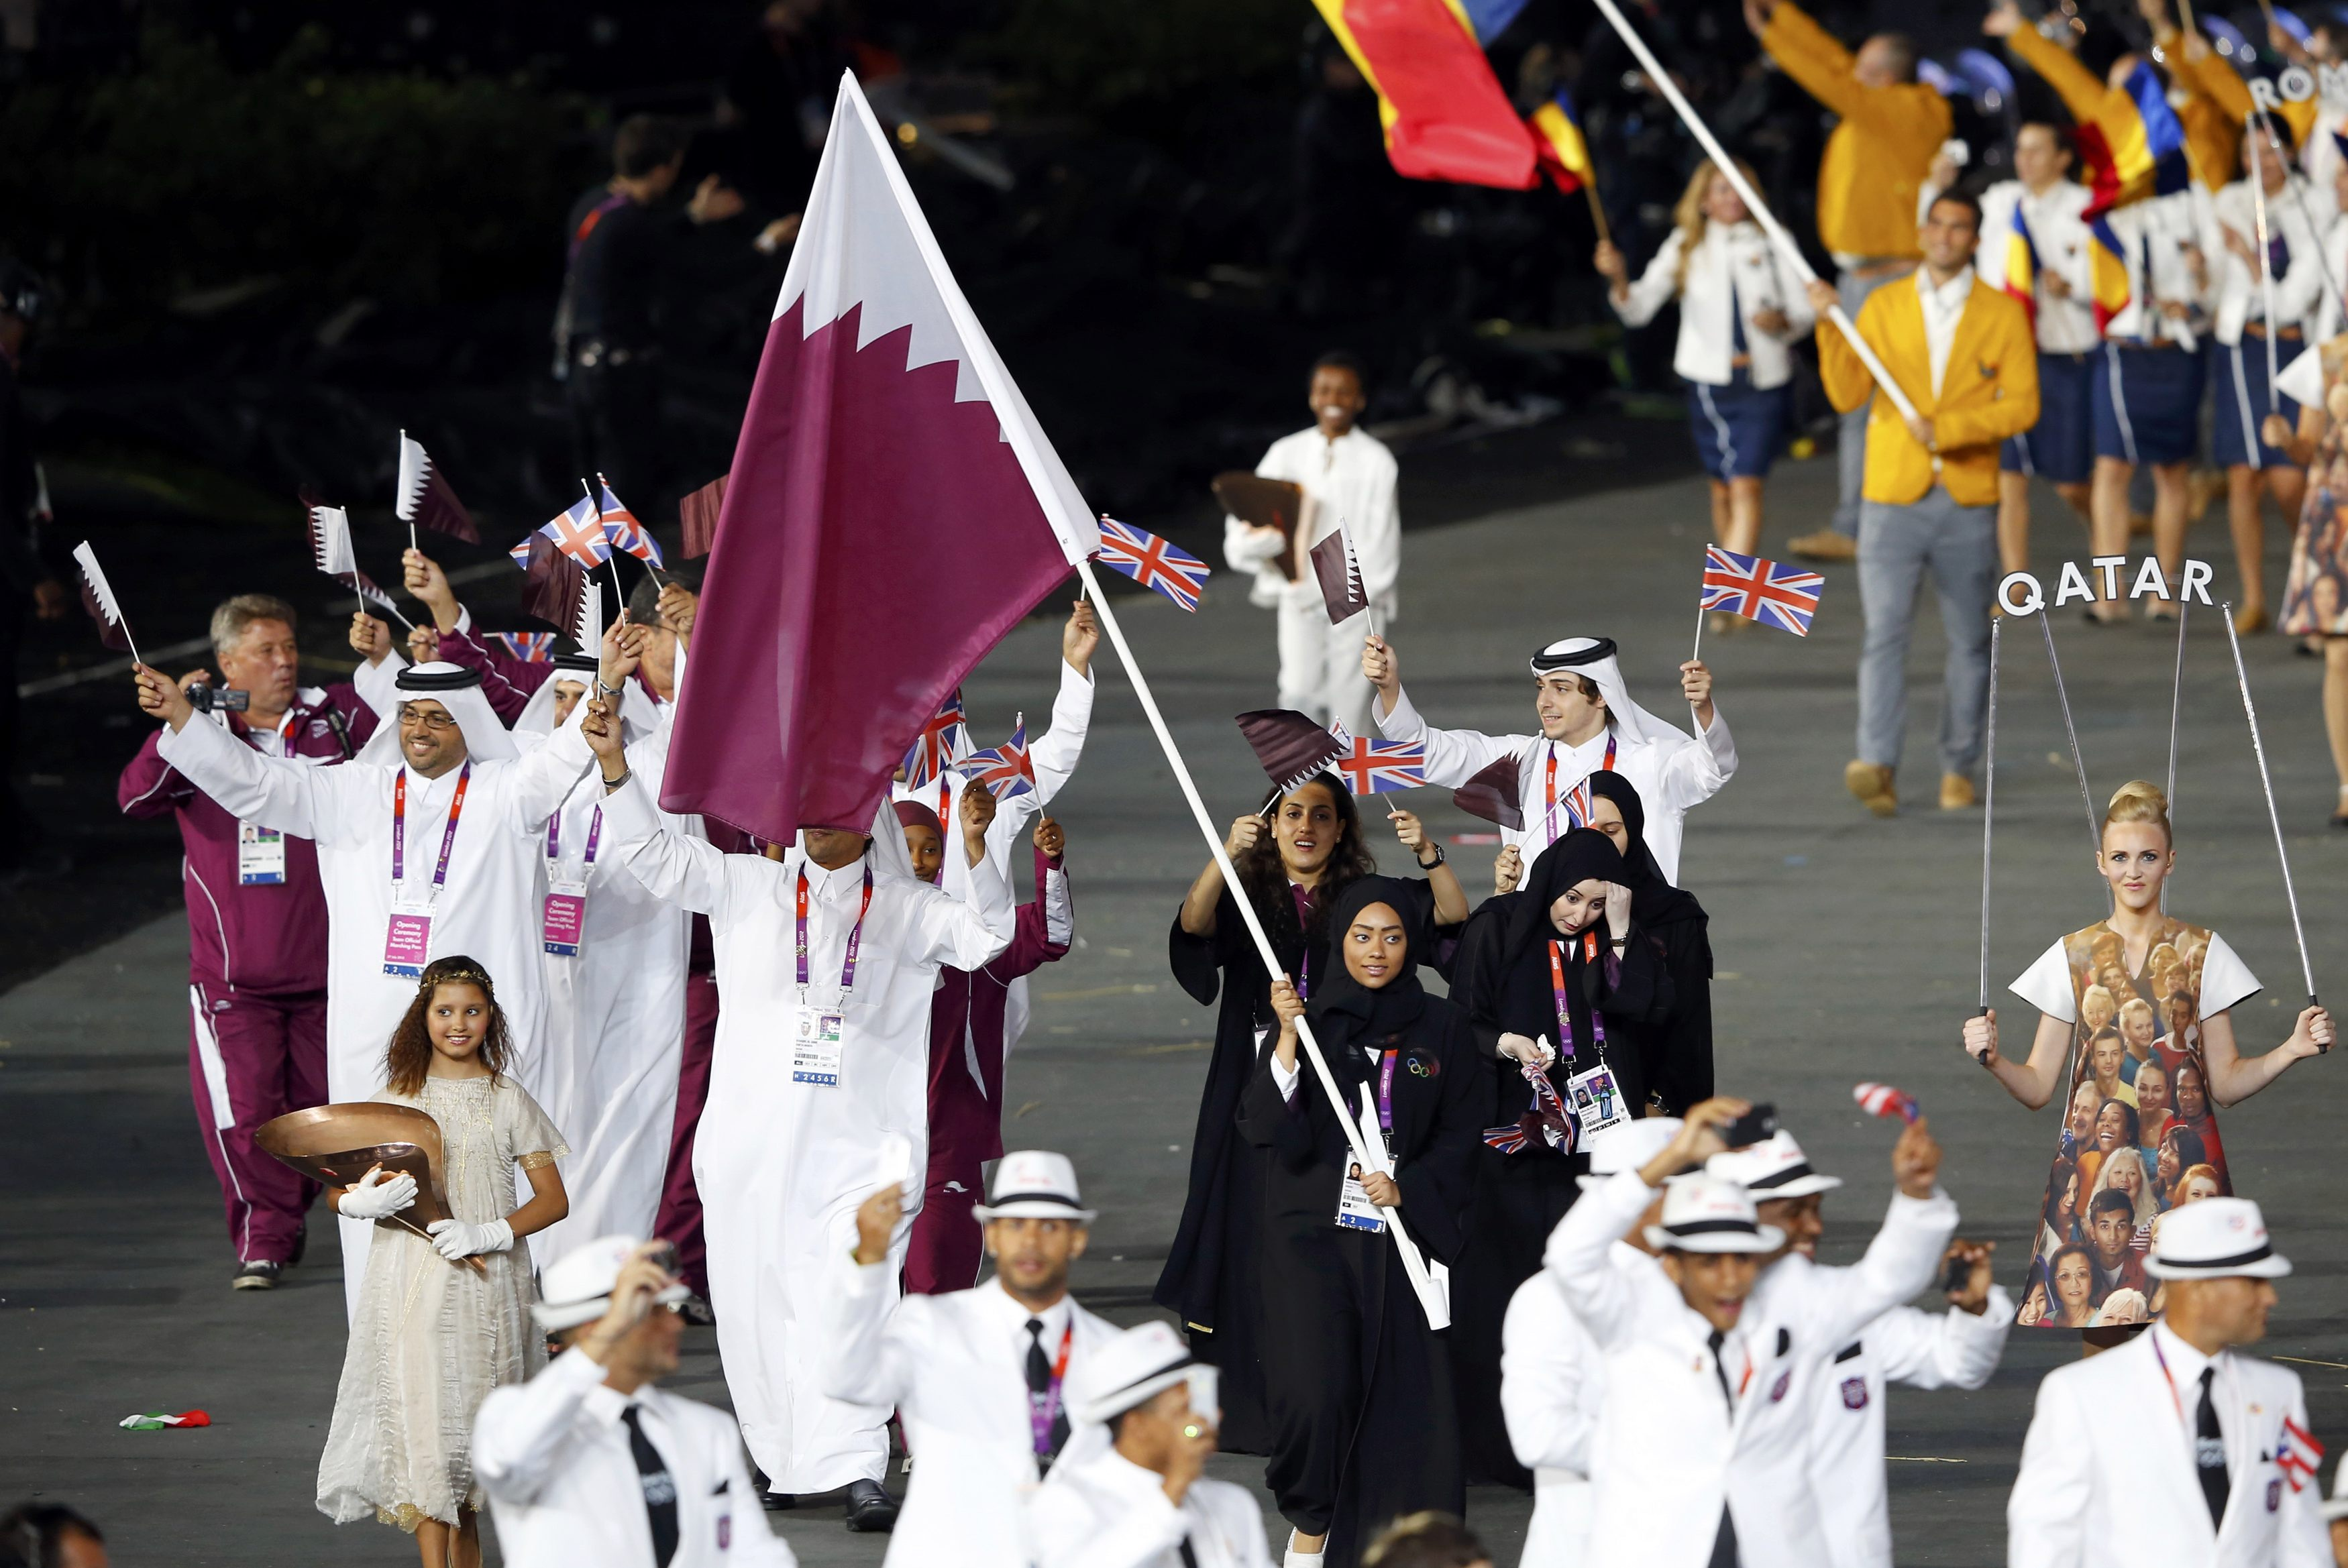 Olympics: Qatar Eyes Major Global Sporting Role